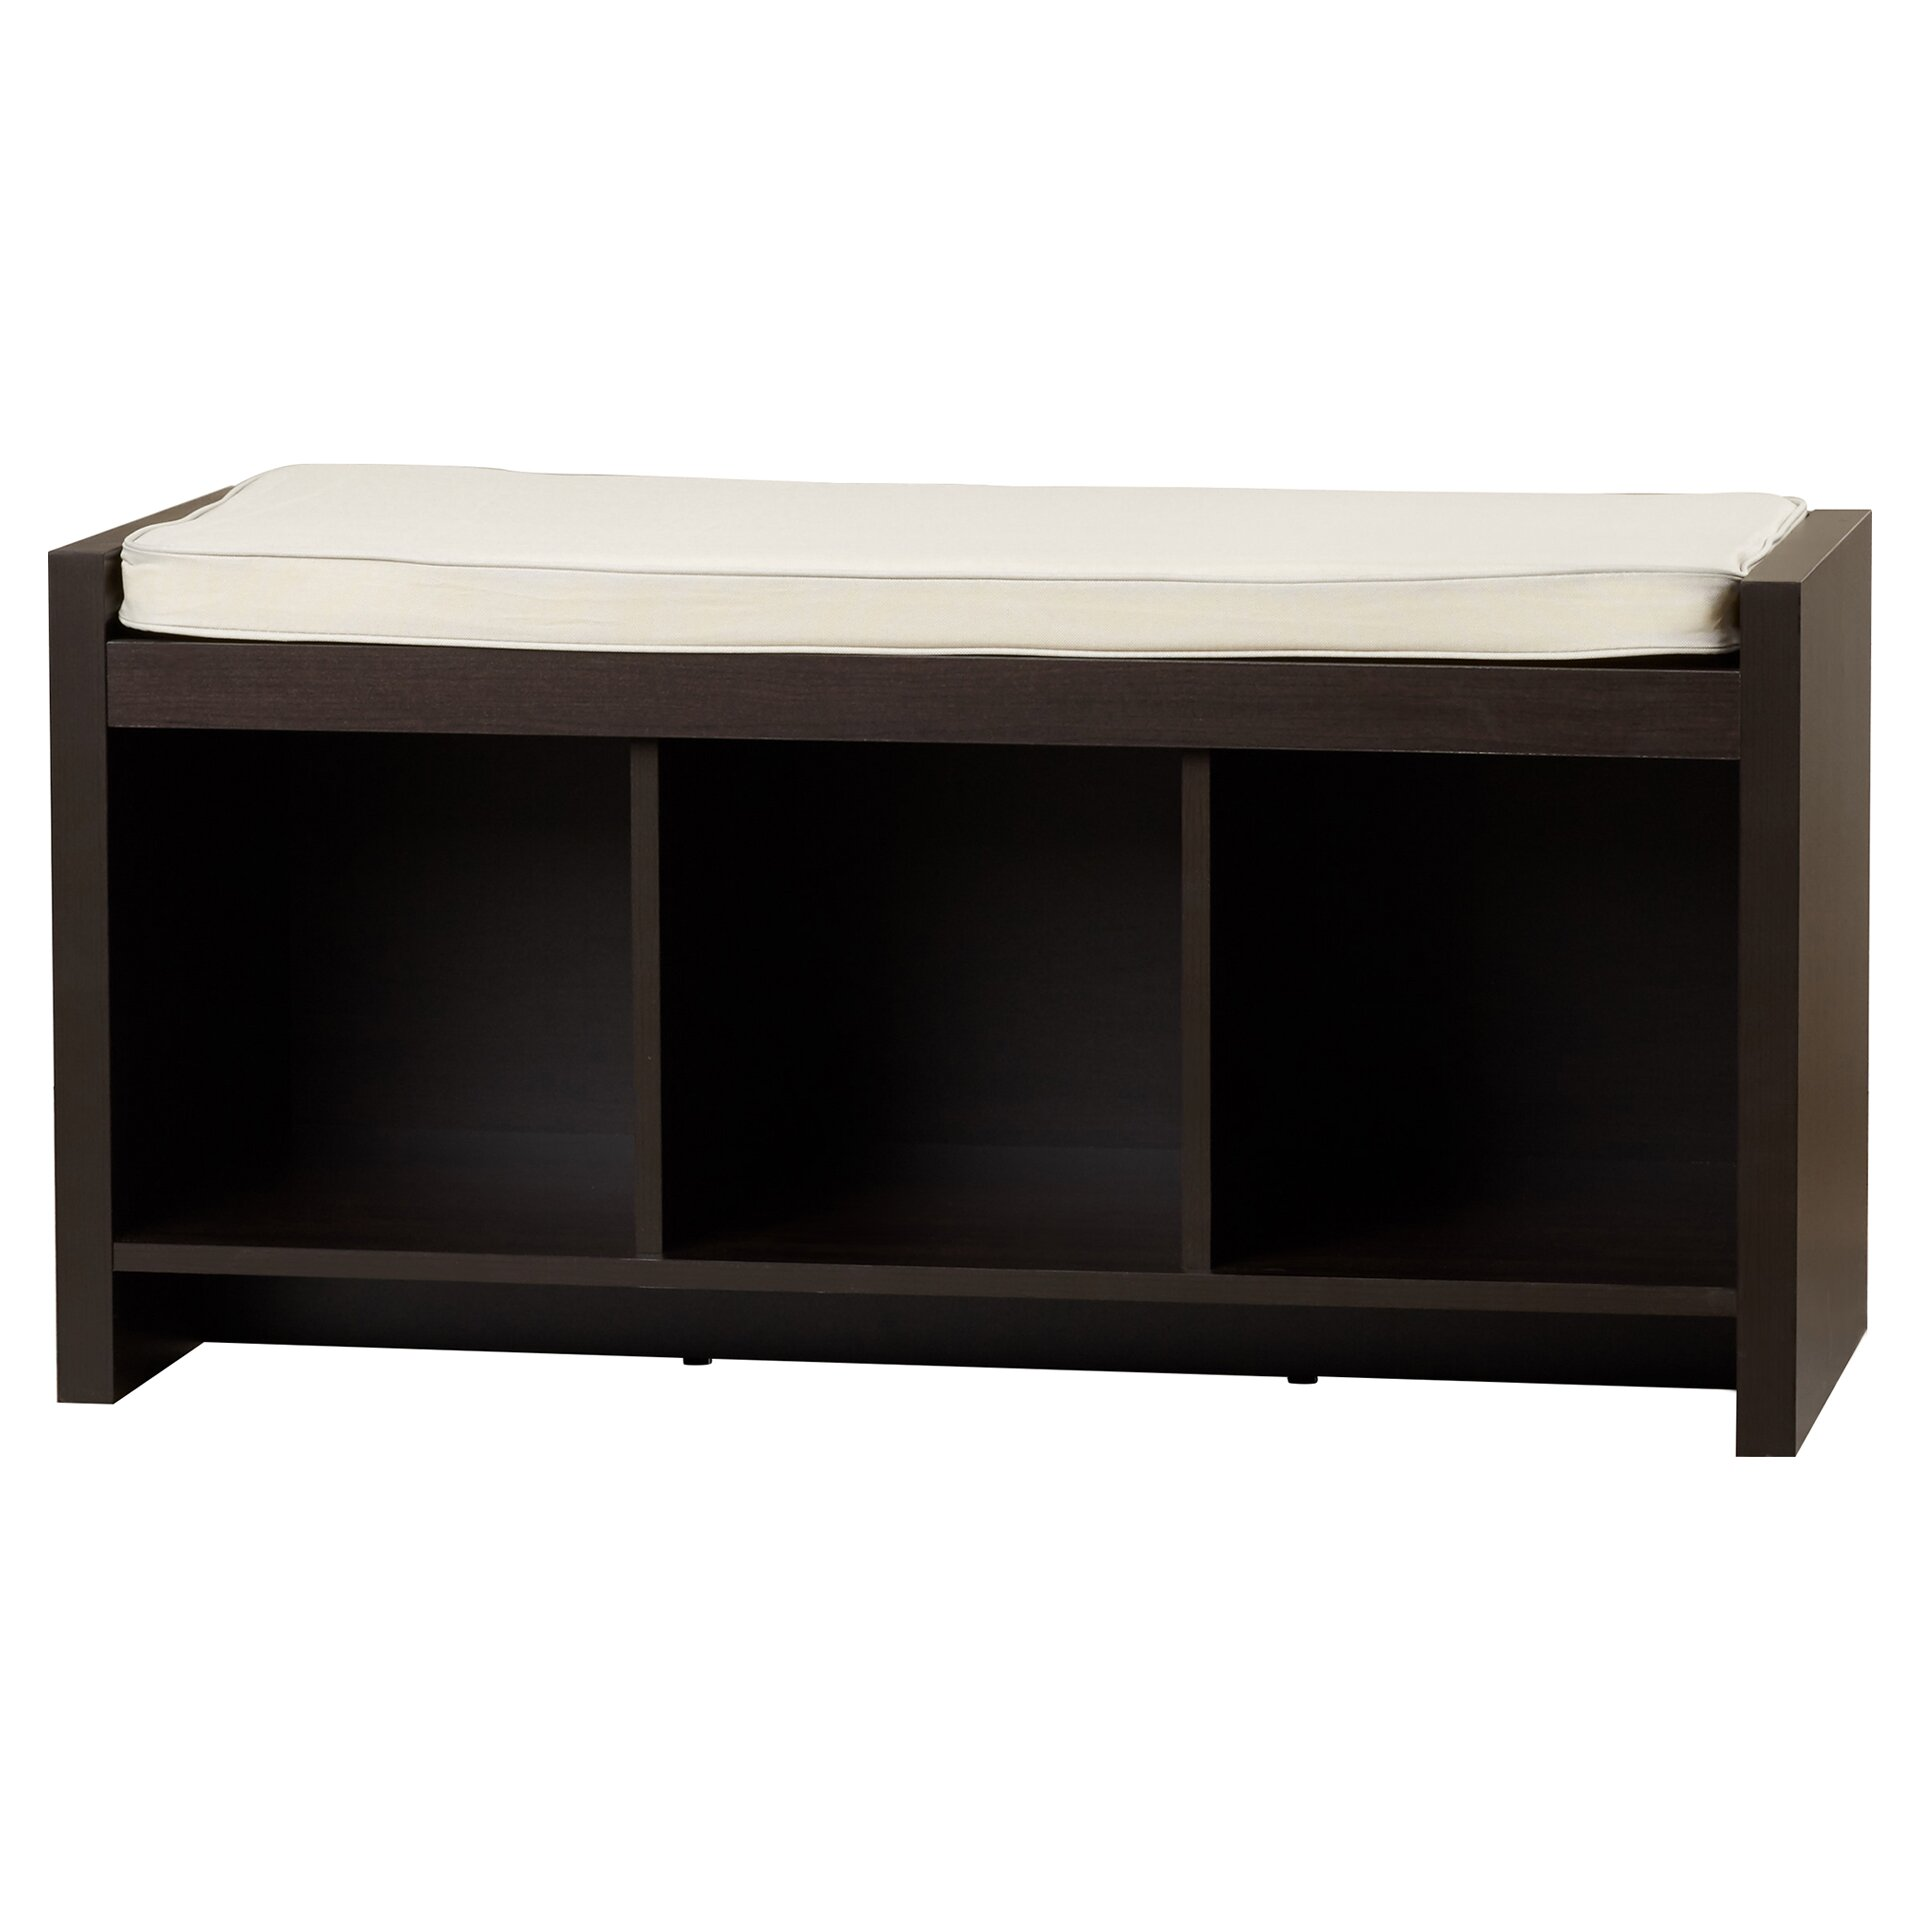 Zipcode Design Claudia Storage Bench With Cushion Reviews